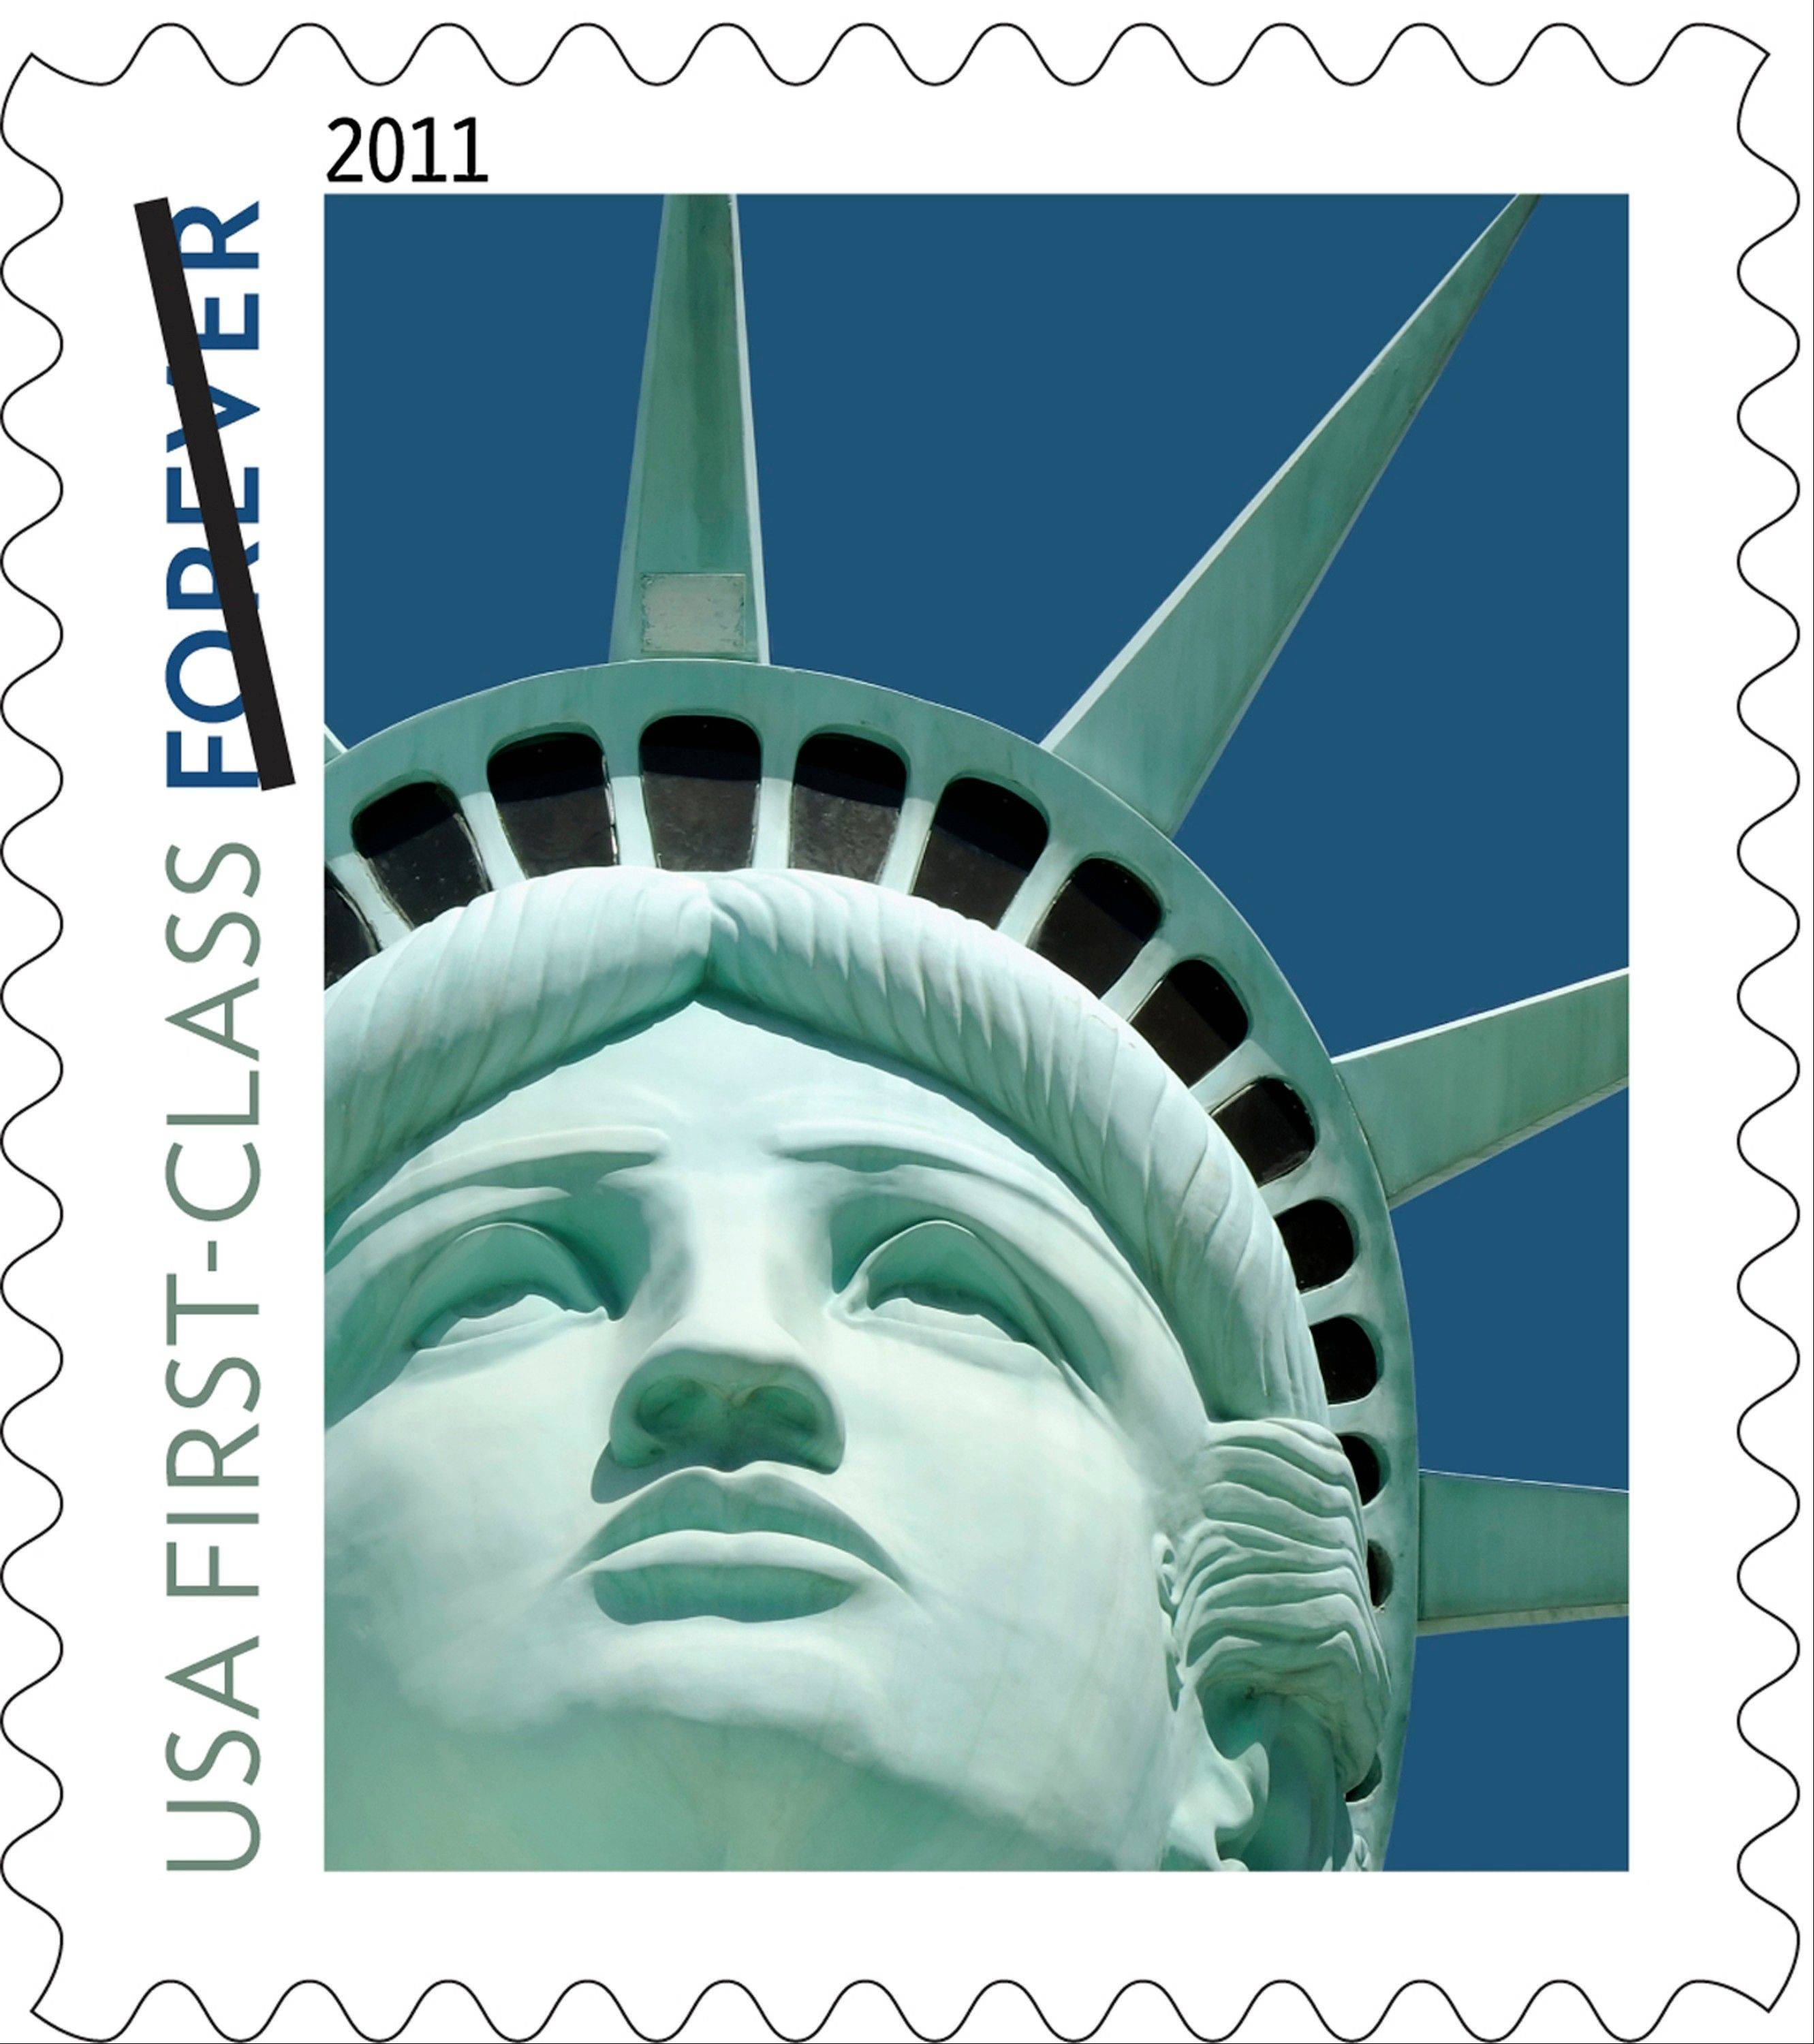 This undated file handout image provided by the U.S. Postal Service shows the Lady Liberty first class postage stamp first issued in 2011. The design released in 2011 was not based on the statue in New York Harbor, as intended, but on a replica outside the New York-New York casino hotel in Las Vegas.